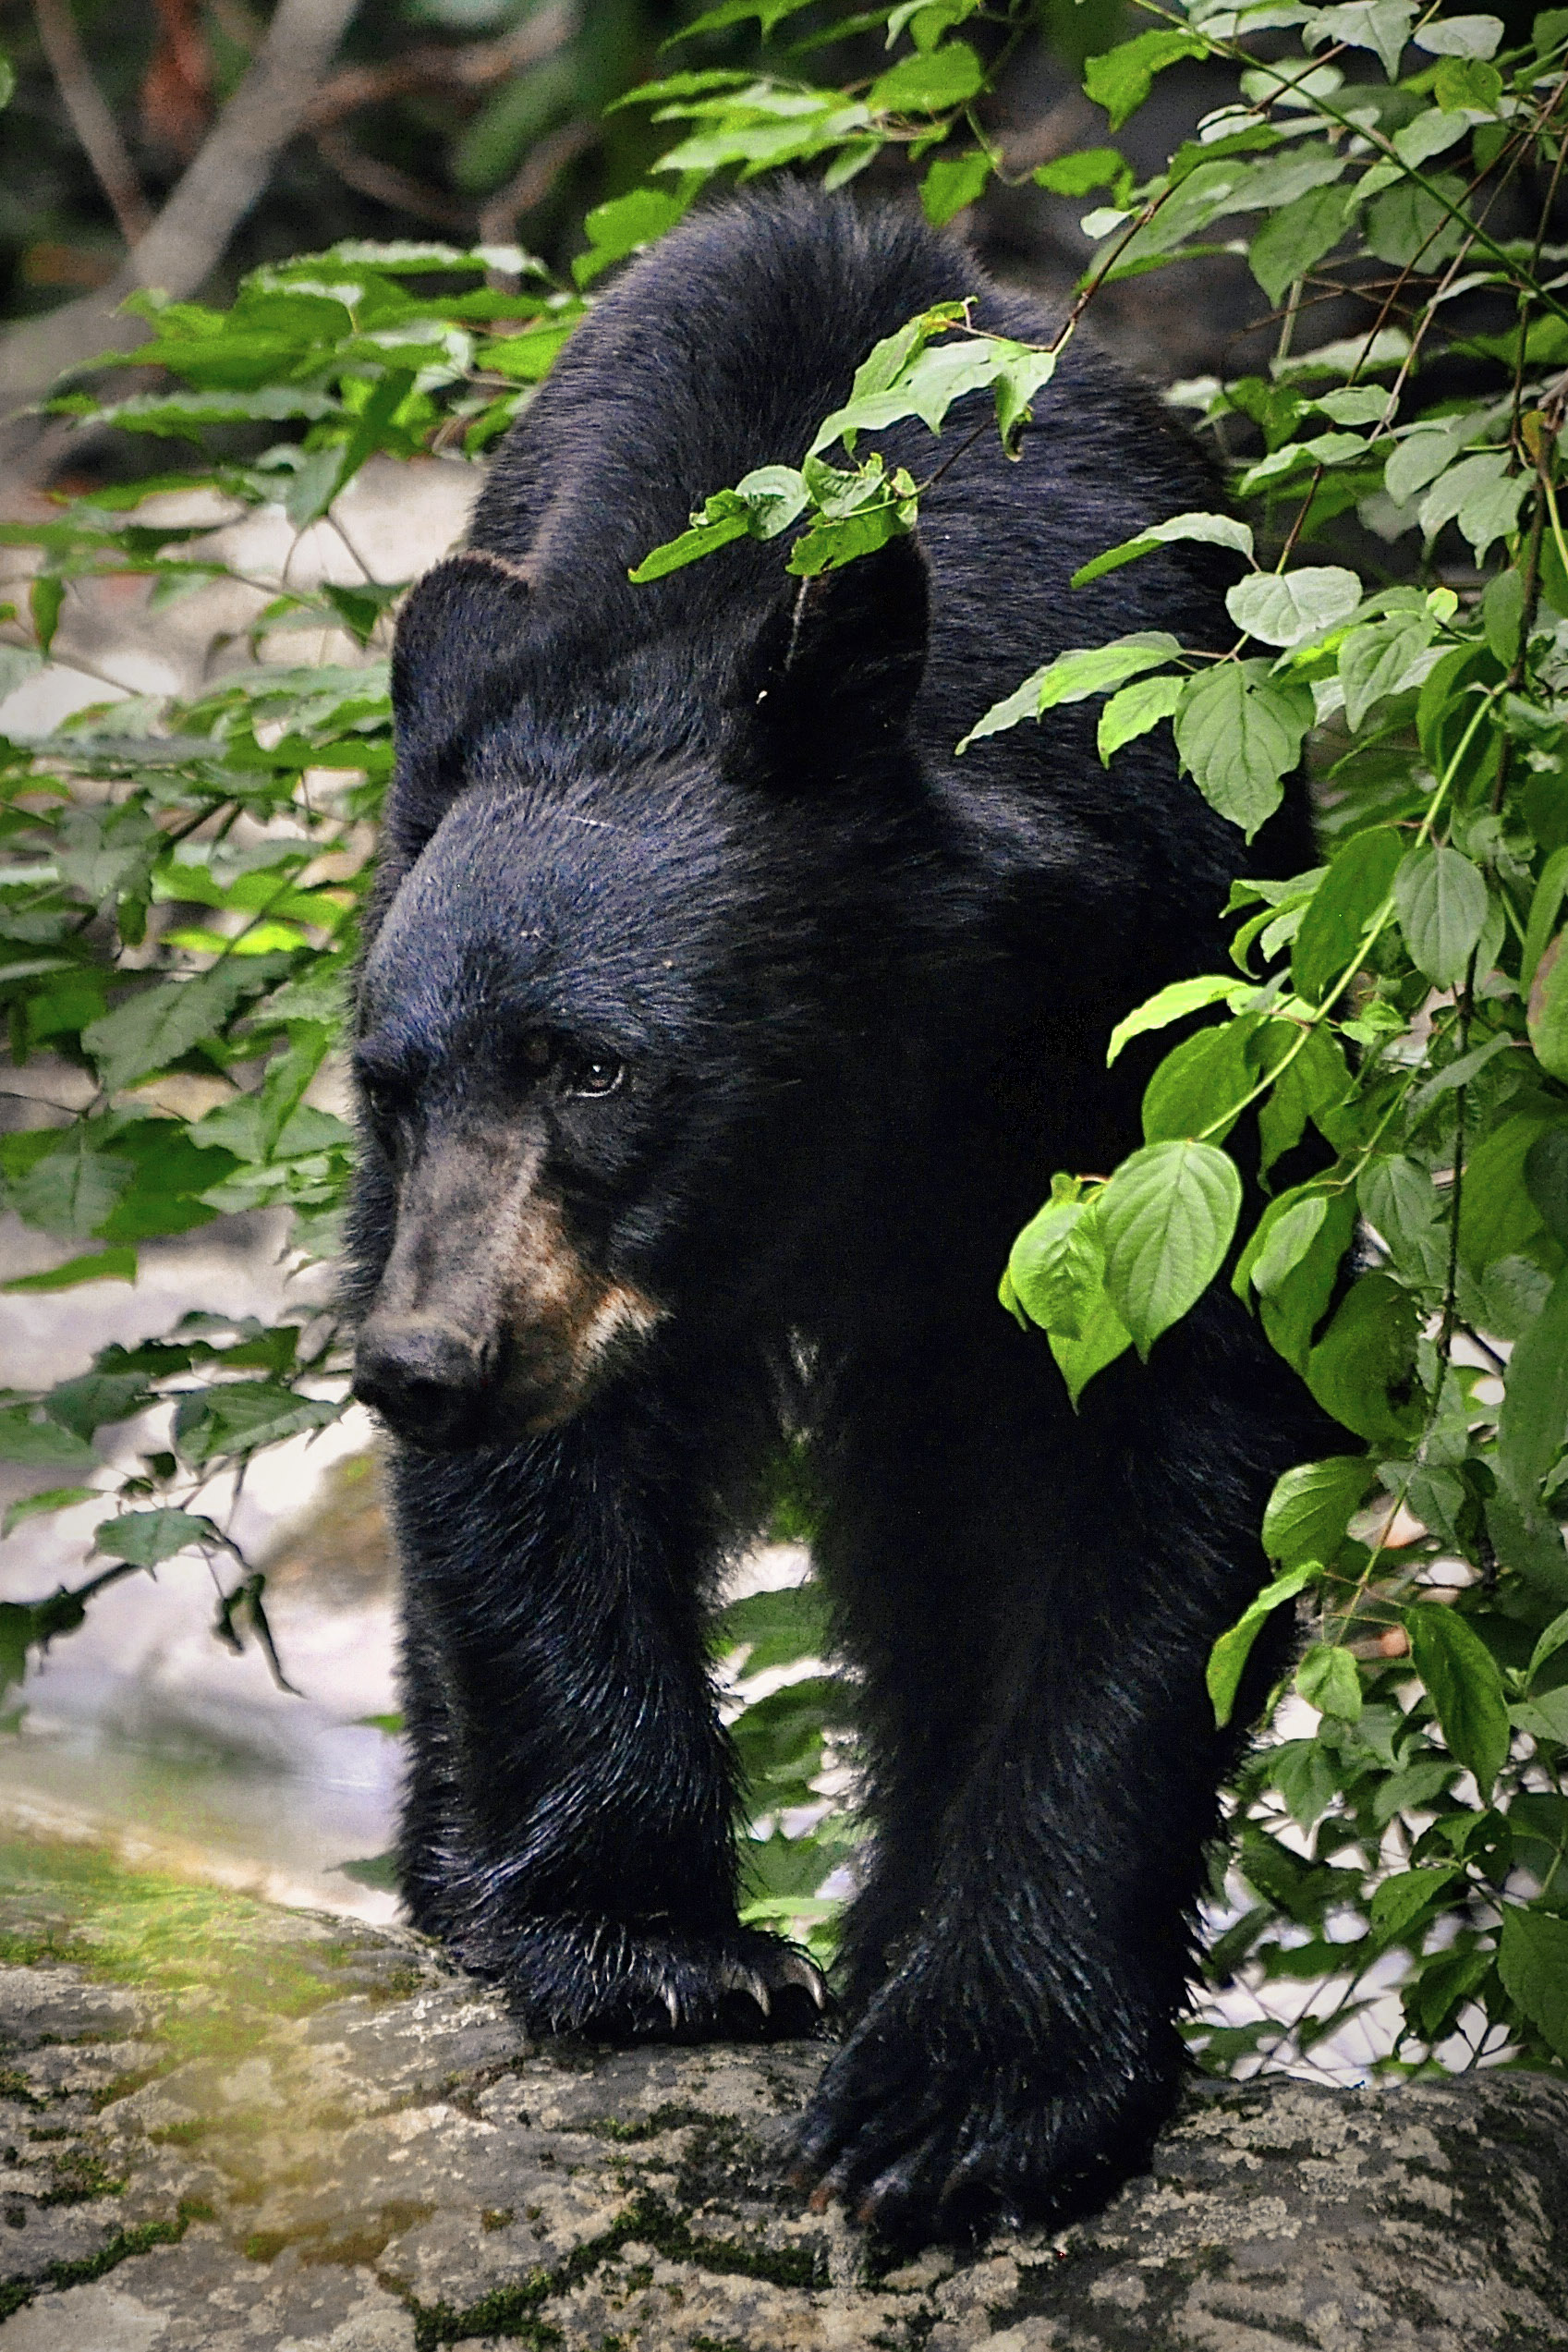 cades cove bear matt.jpg